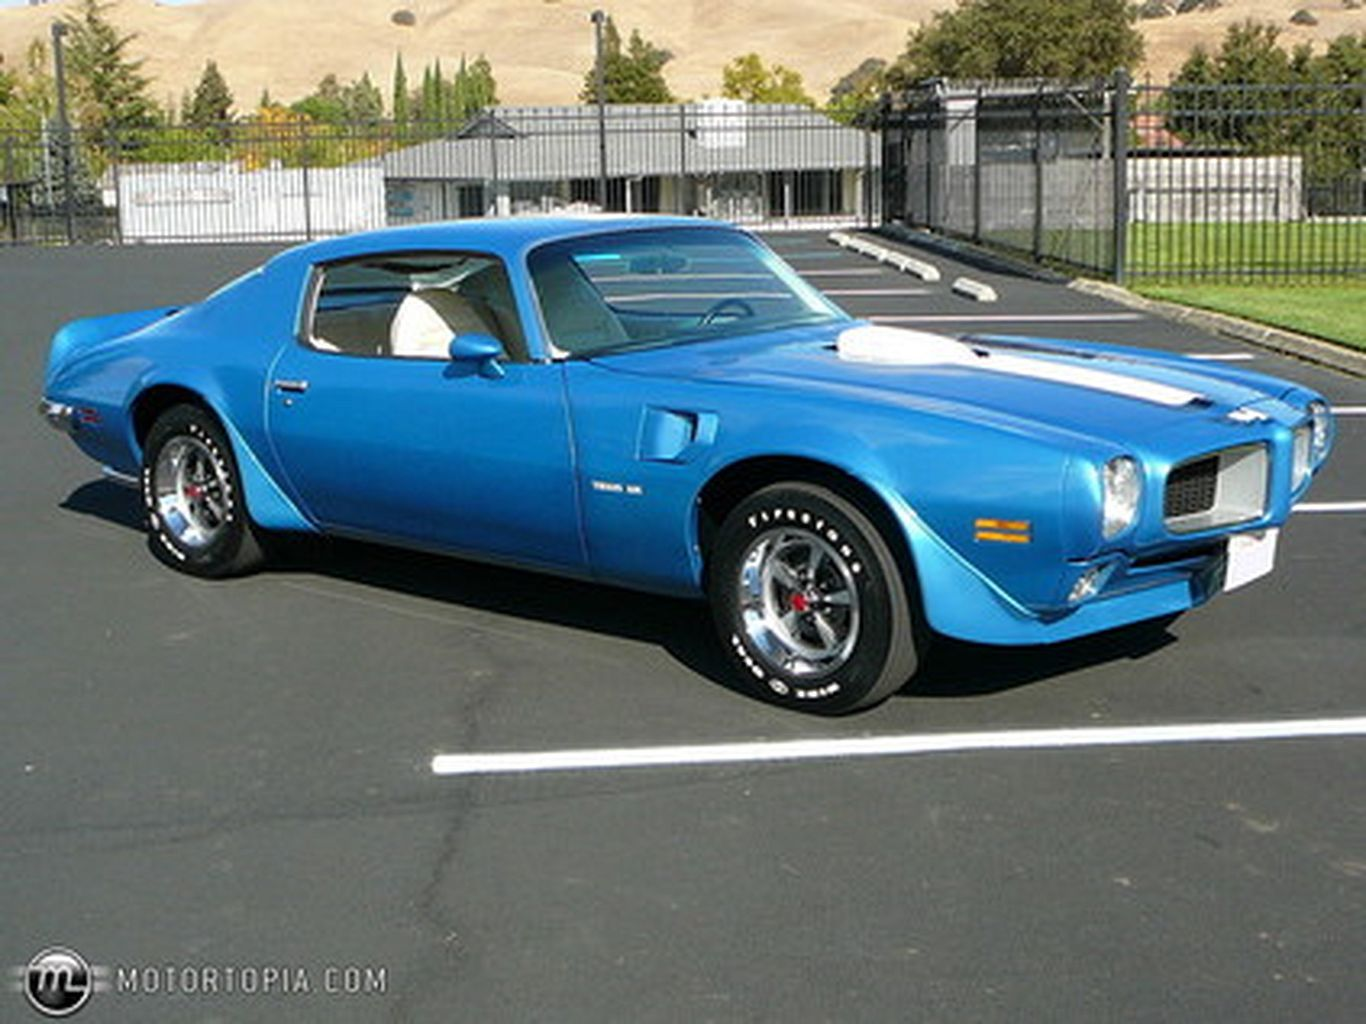 1972 formula 455 pontiac firebird most powerful production car since the 454 corvette mine was red and was a drove like a rocket